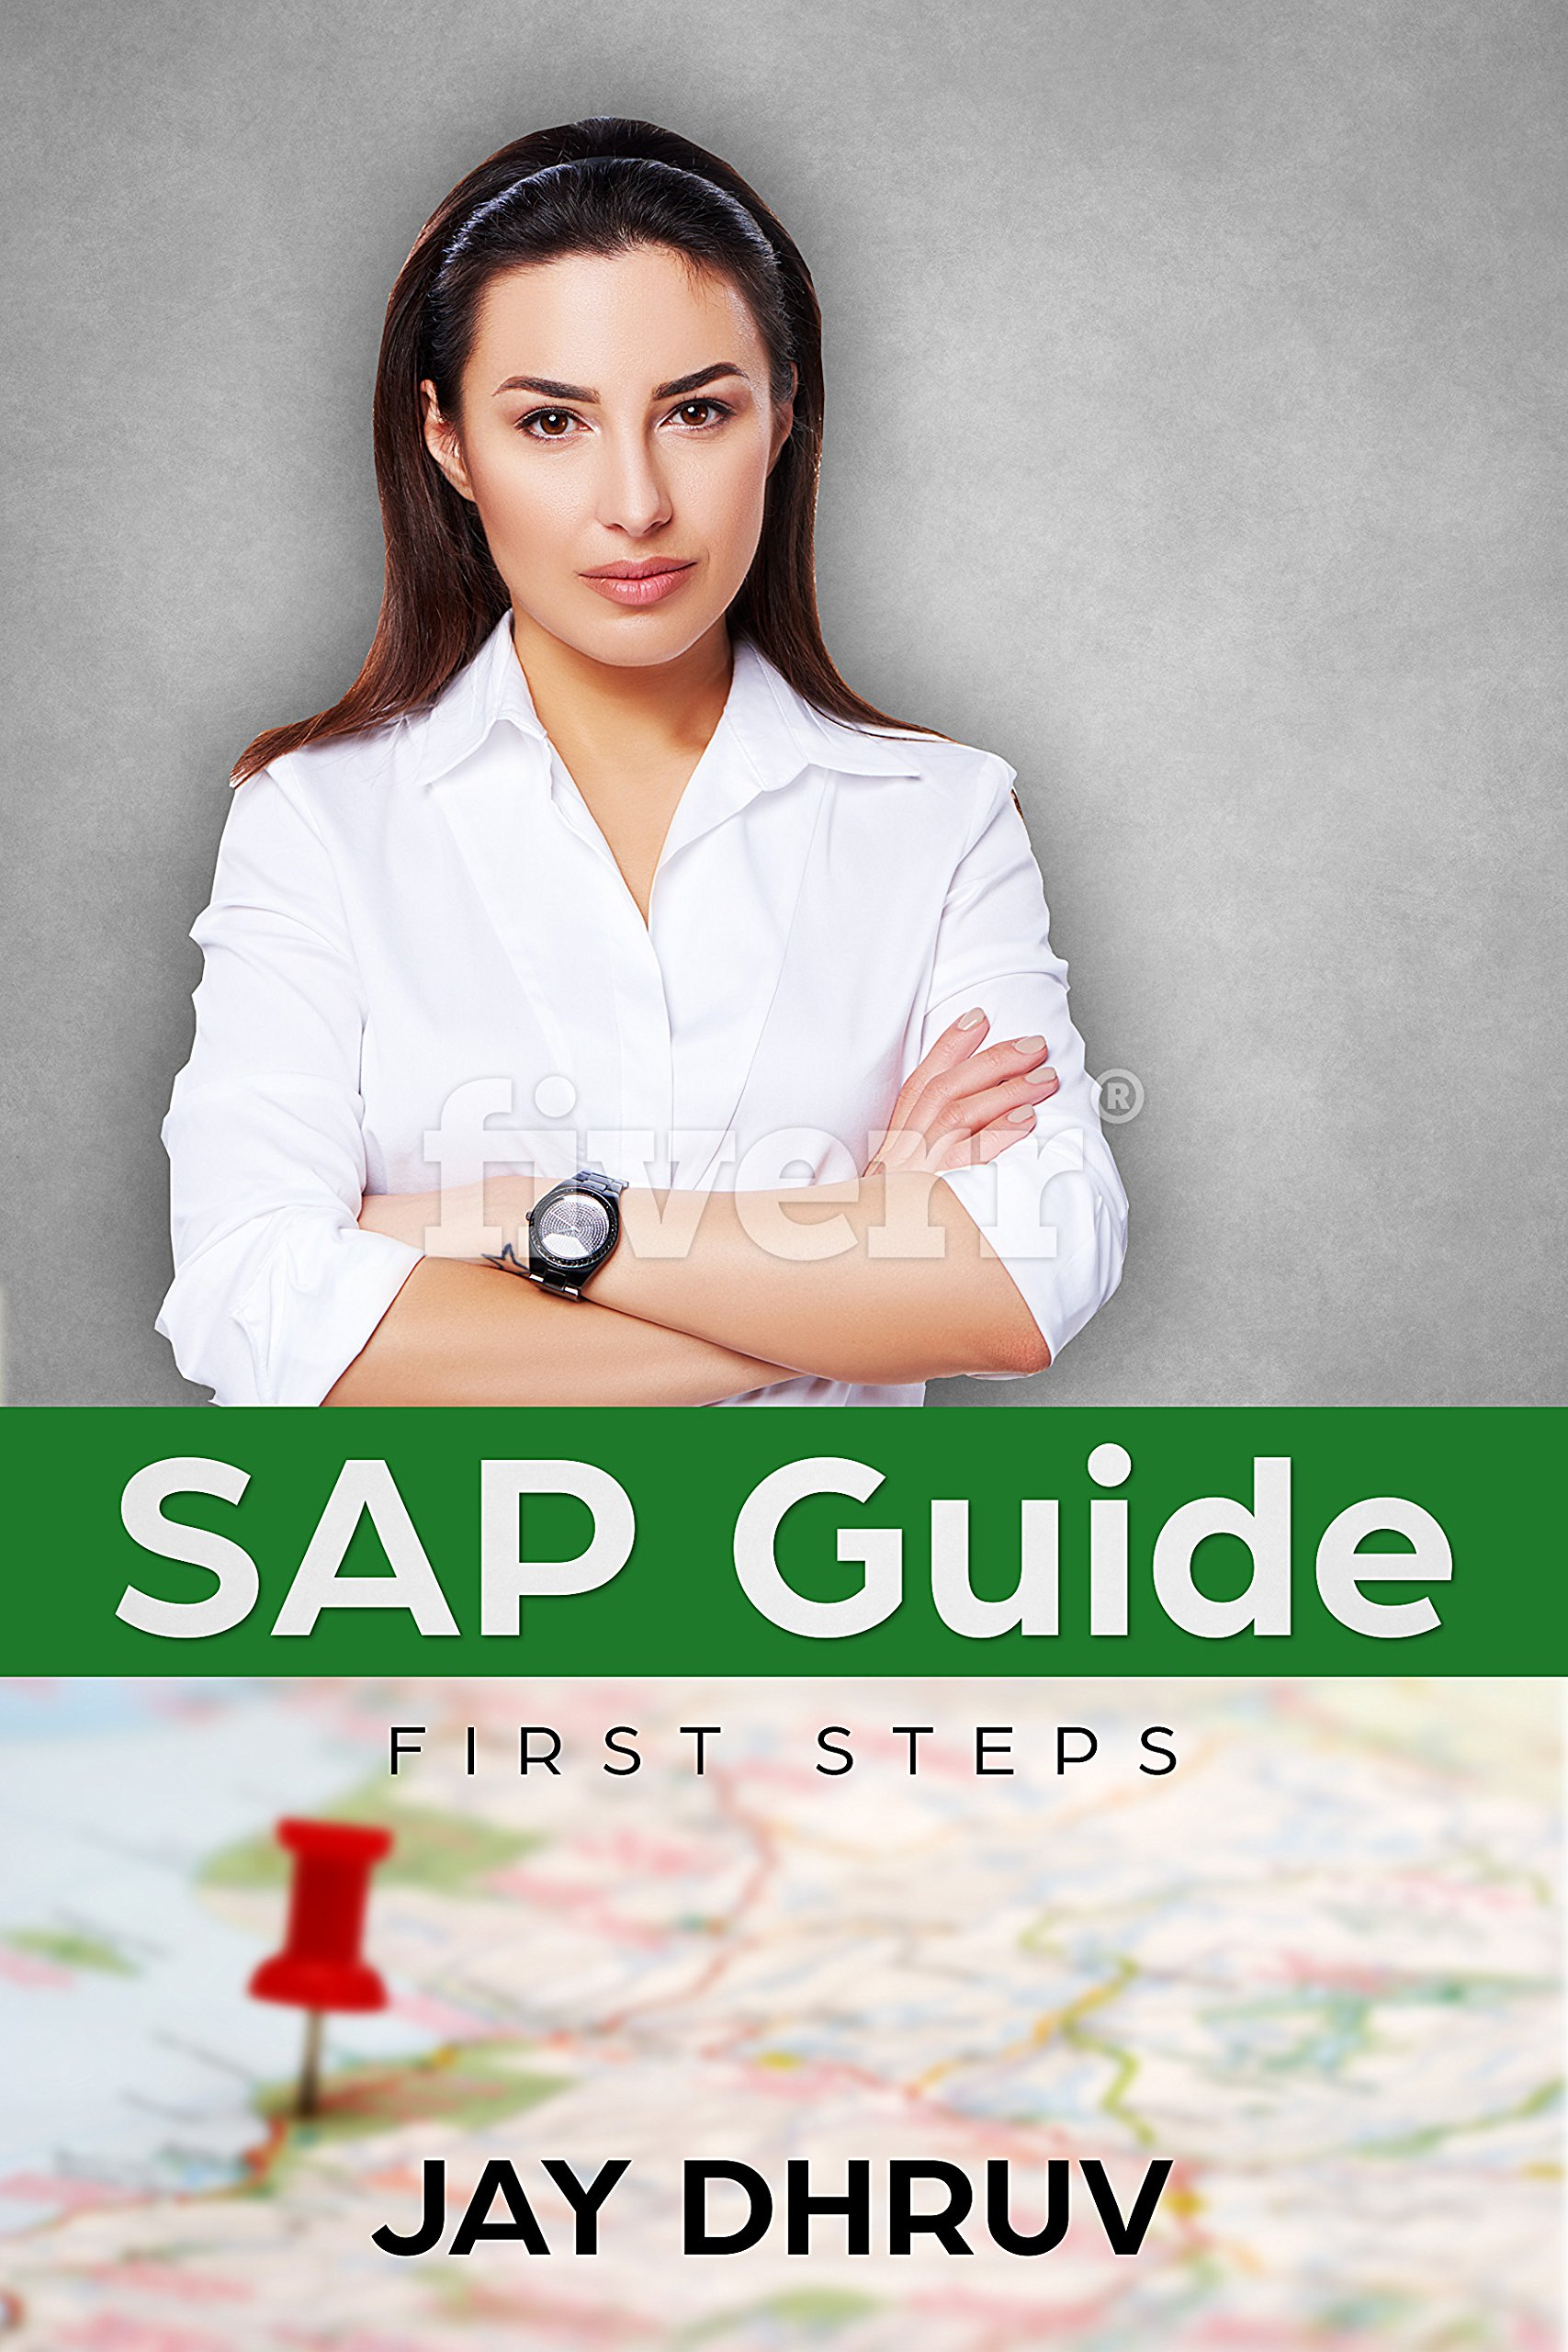 SAP ABAP   Learn SAP ABAP And Learn It Well  Master SAP ABAP With Step By Step Instructions And Live Project Like Guidance  SAP Training   English Edition